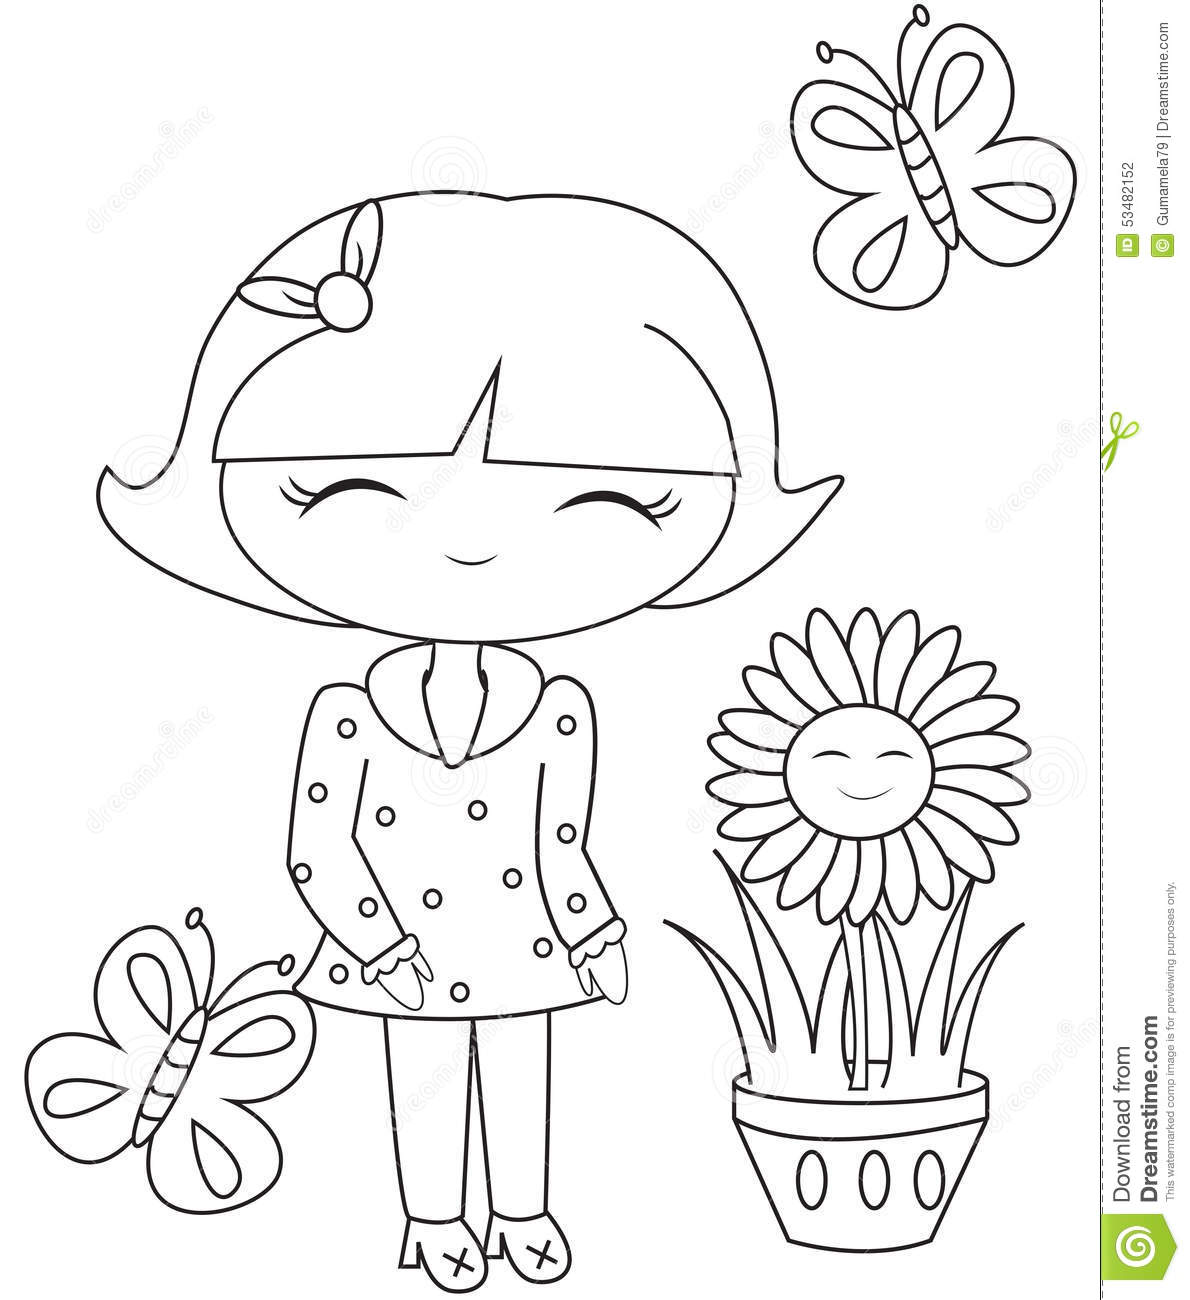 Royalty Free Illustration Download Girl With Butterflies And A Flower Pot Coloring Page